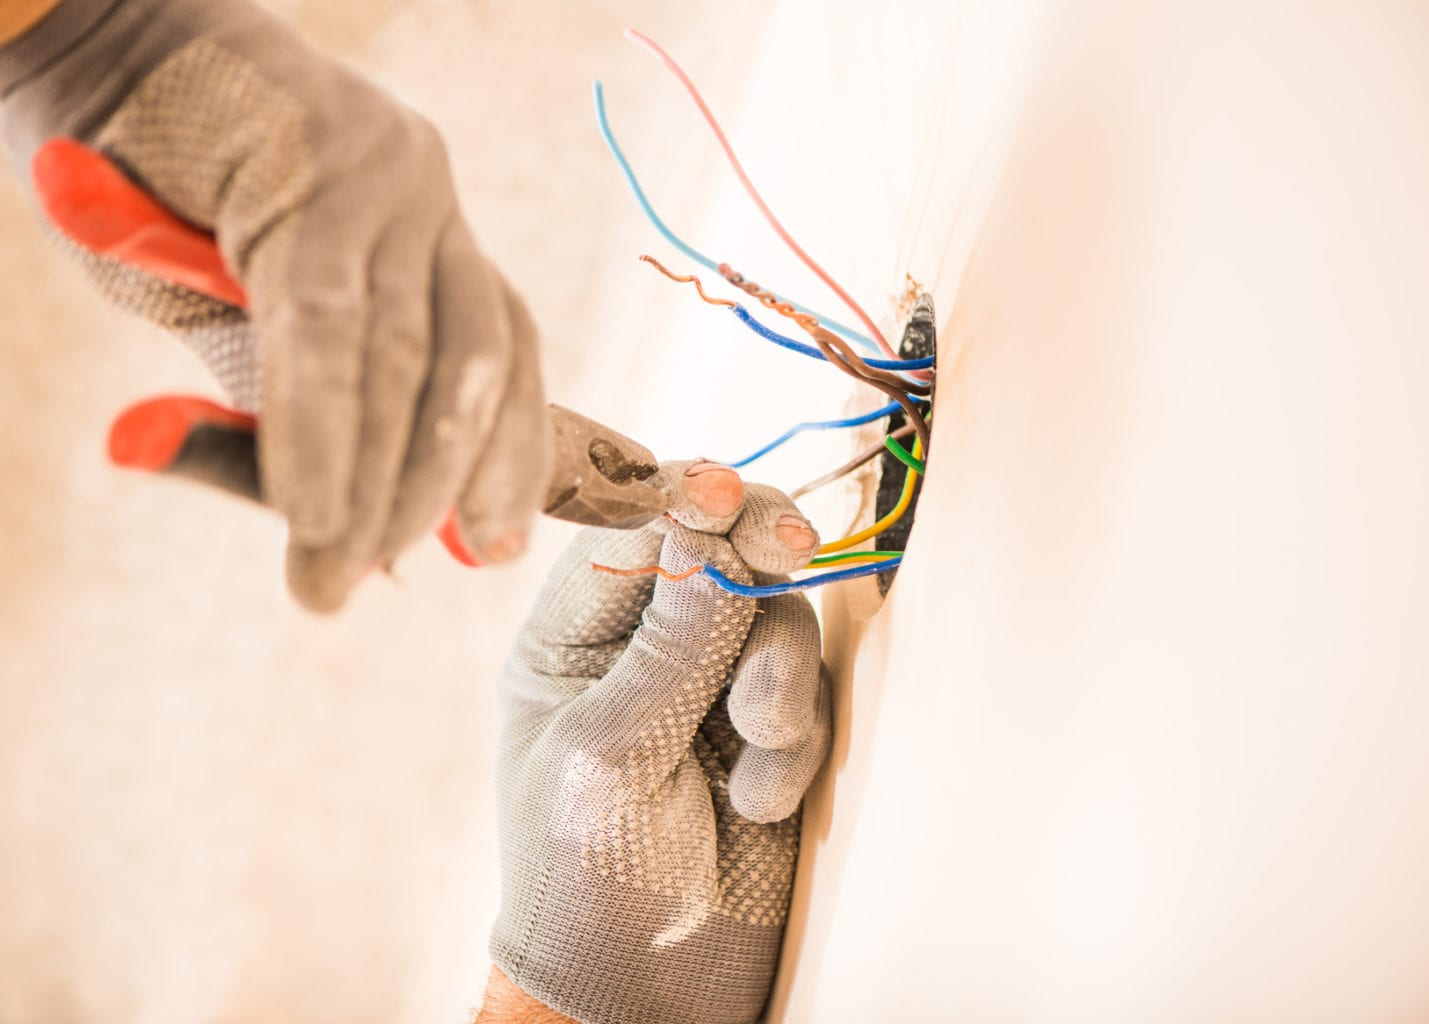 hight resolution of diy electrical mistakes occur often when working with wiring call mister sparky for all